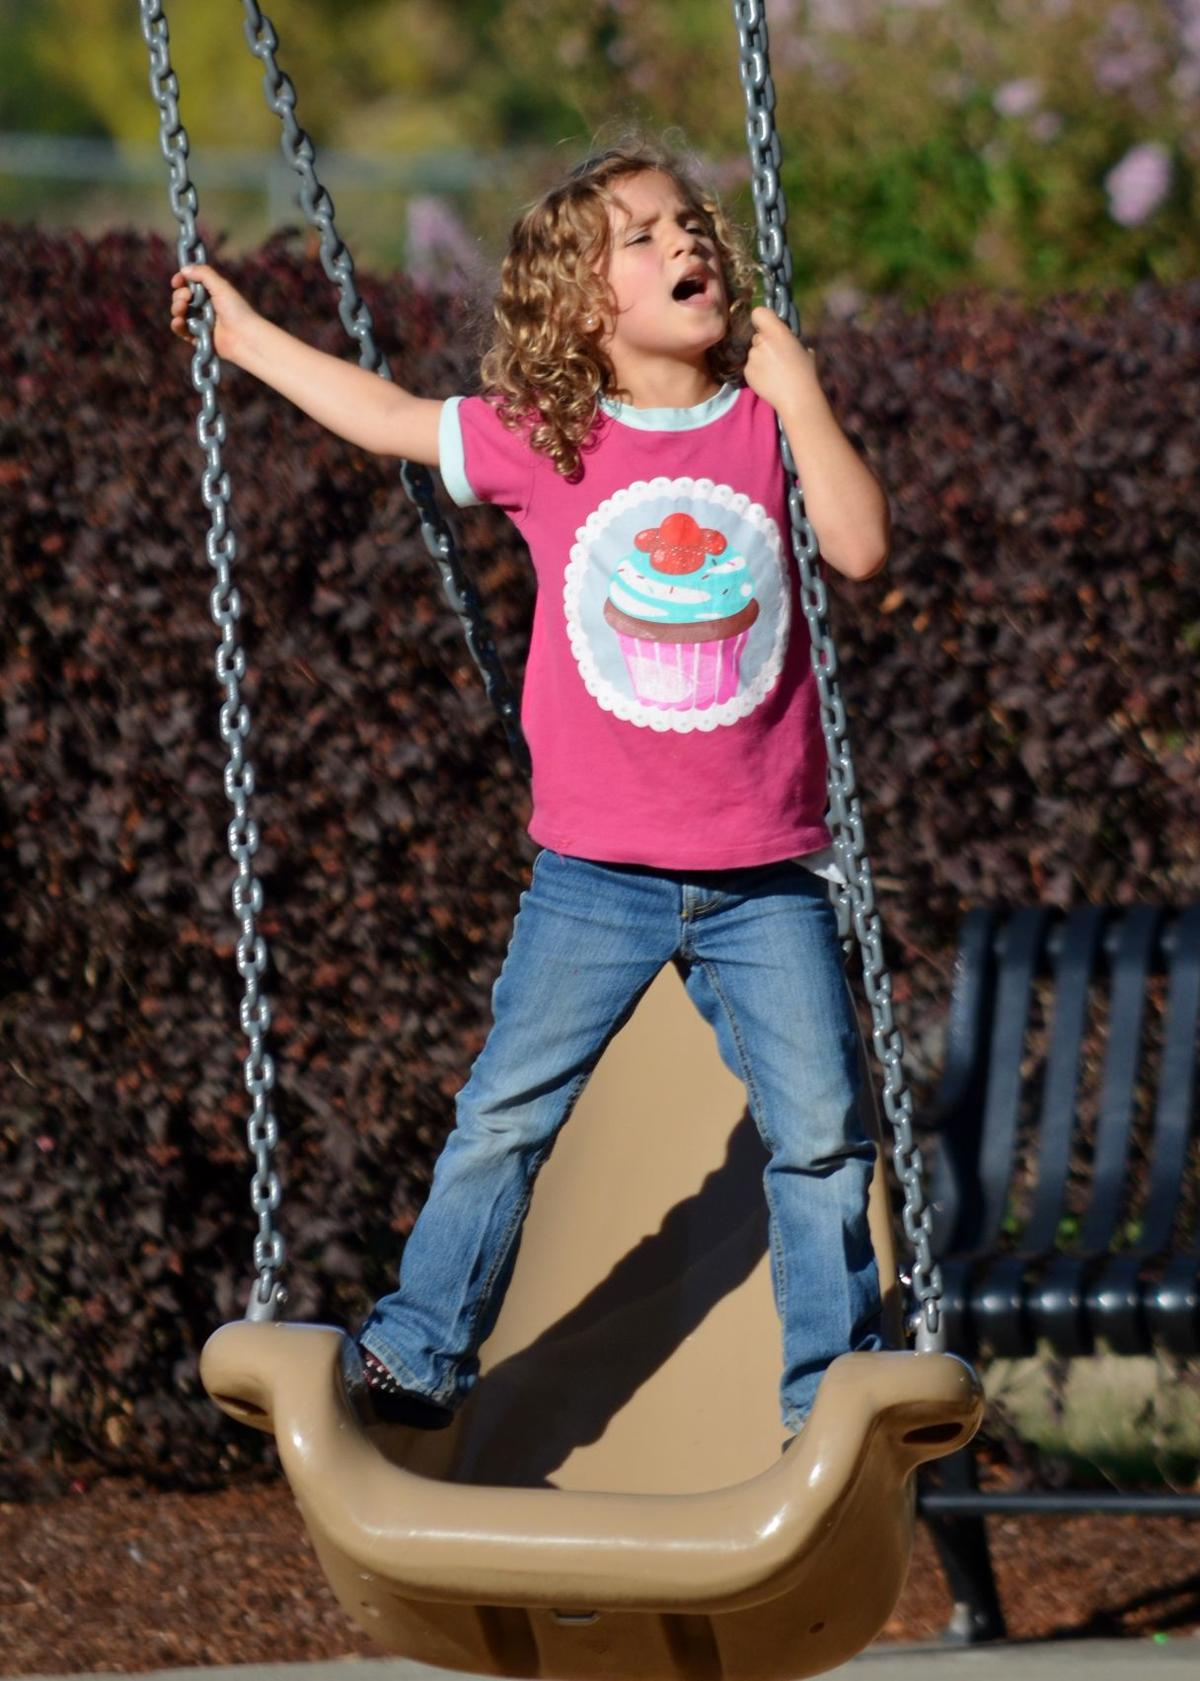 Willow Weldon of Roseburg, 6, yells for her dad, Lee, to push her on the swing at the Stewart Park playground on Tuesday. Weather forecasts are calling for temperatures in the low 90s, which is unseasonably warm for late September.